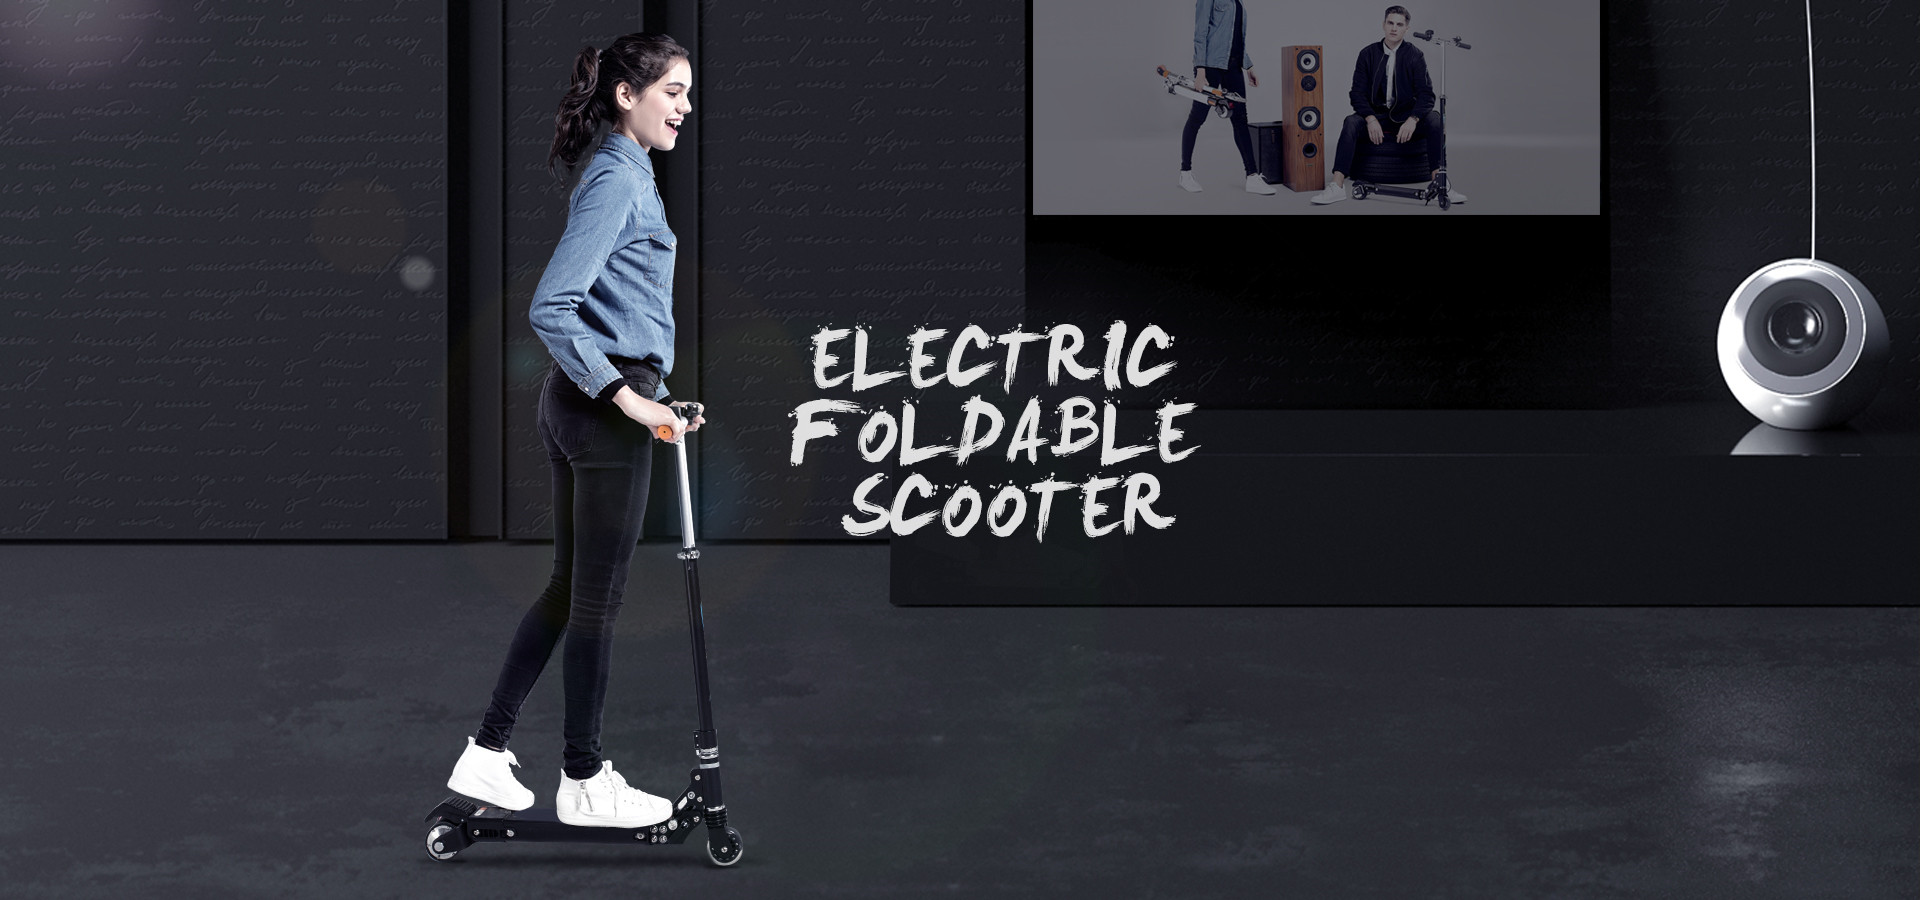 Airwheel Z8 personal electric scooter